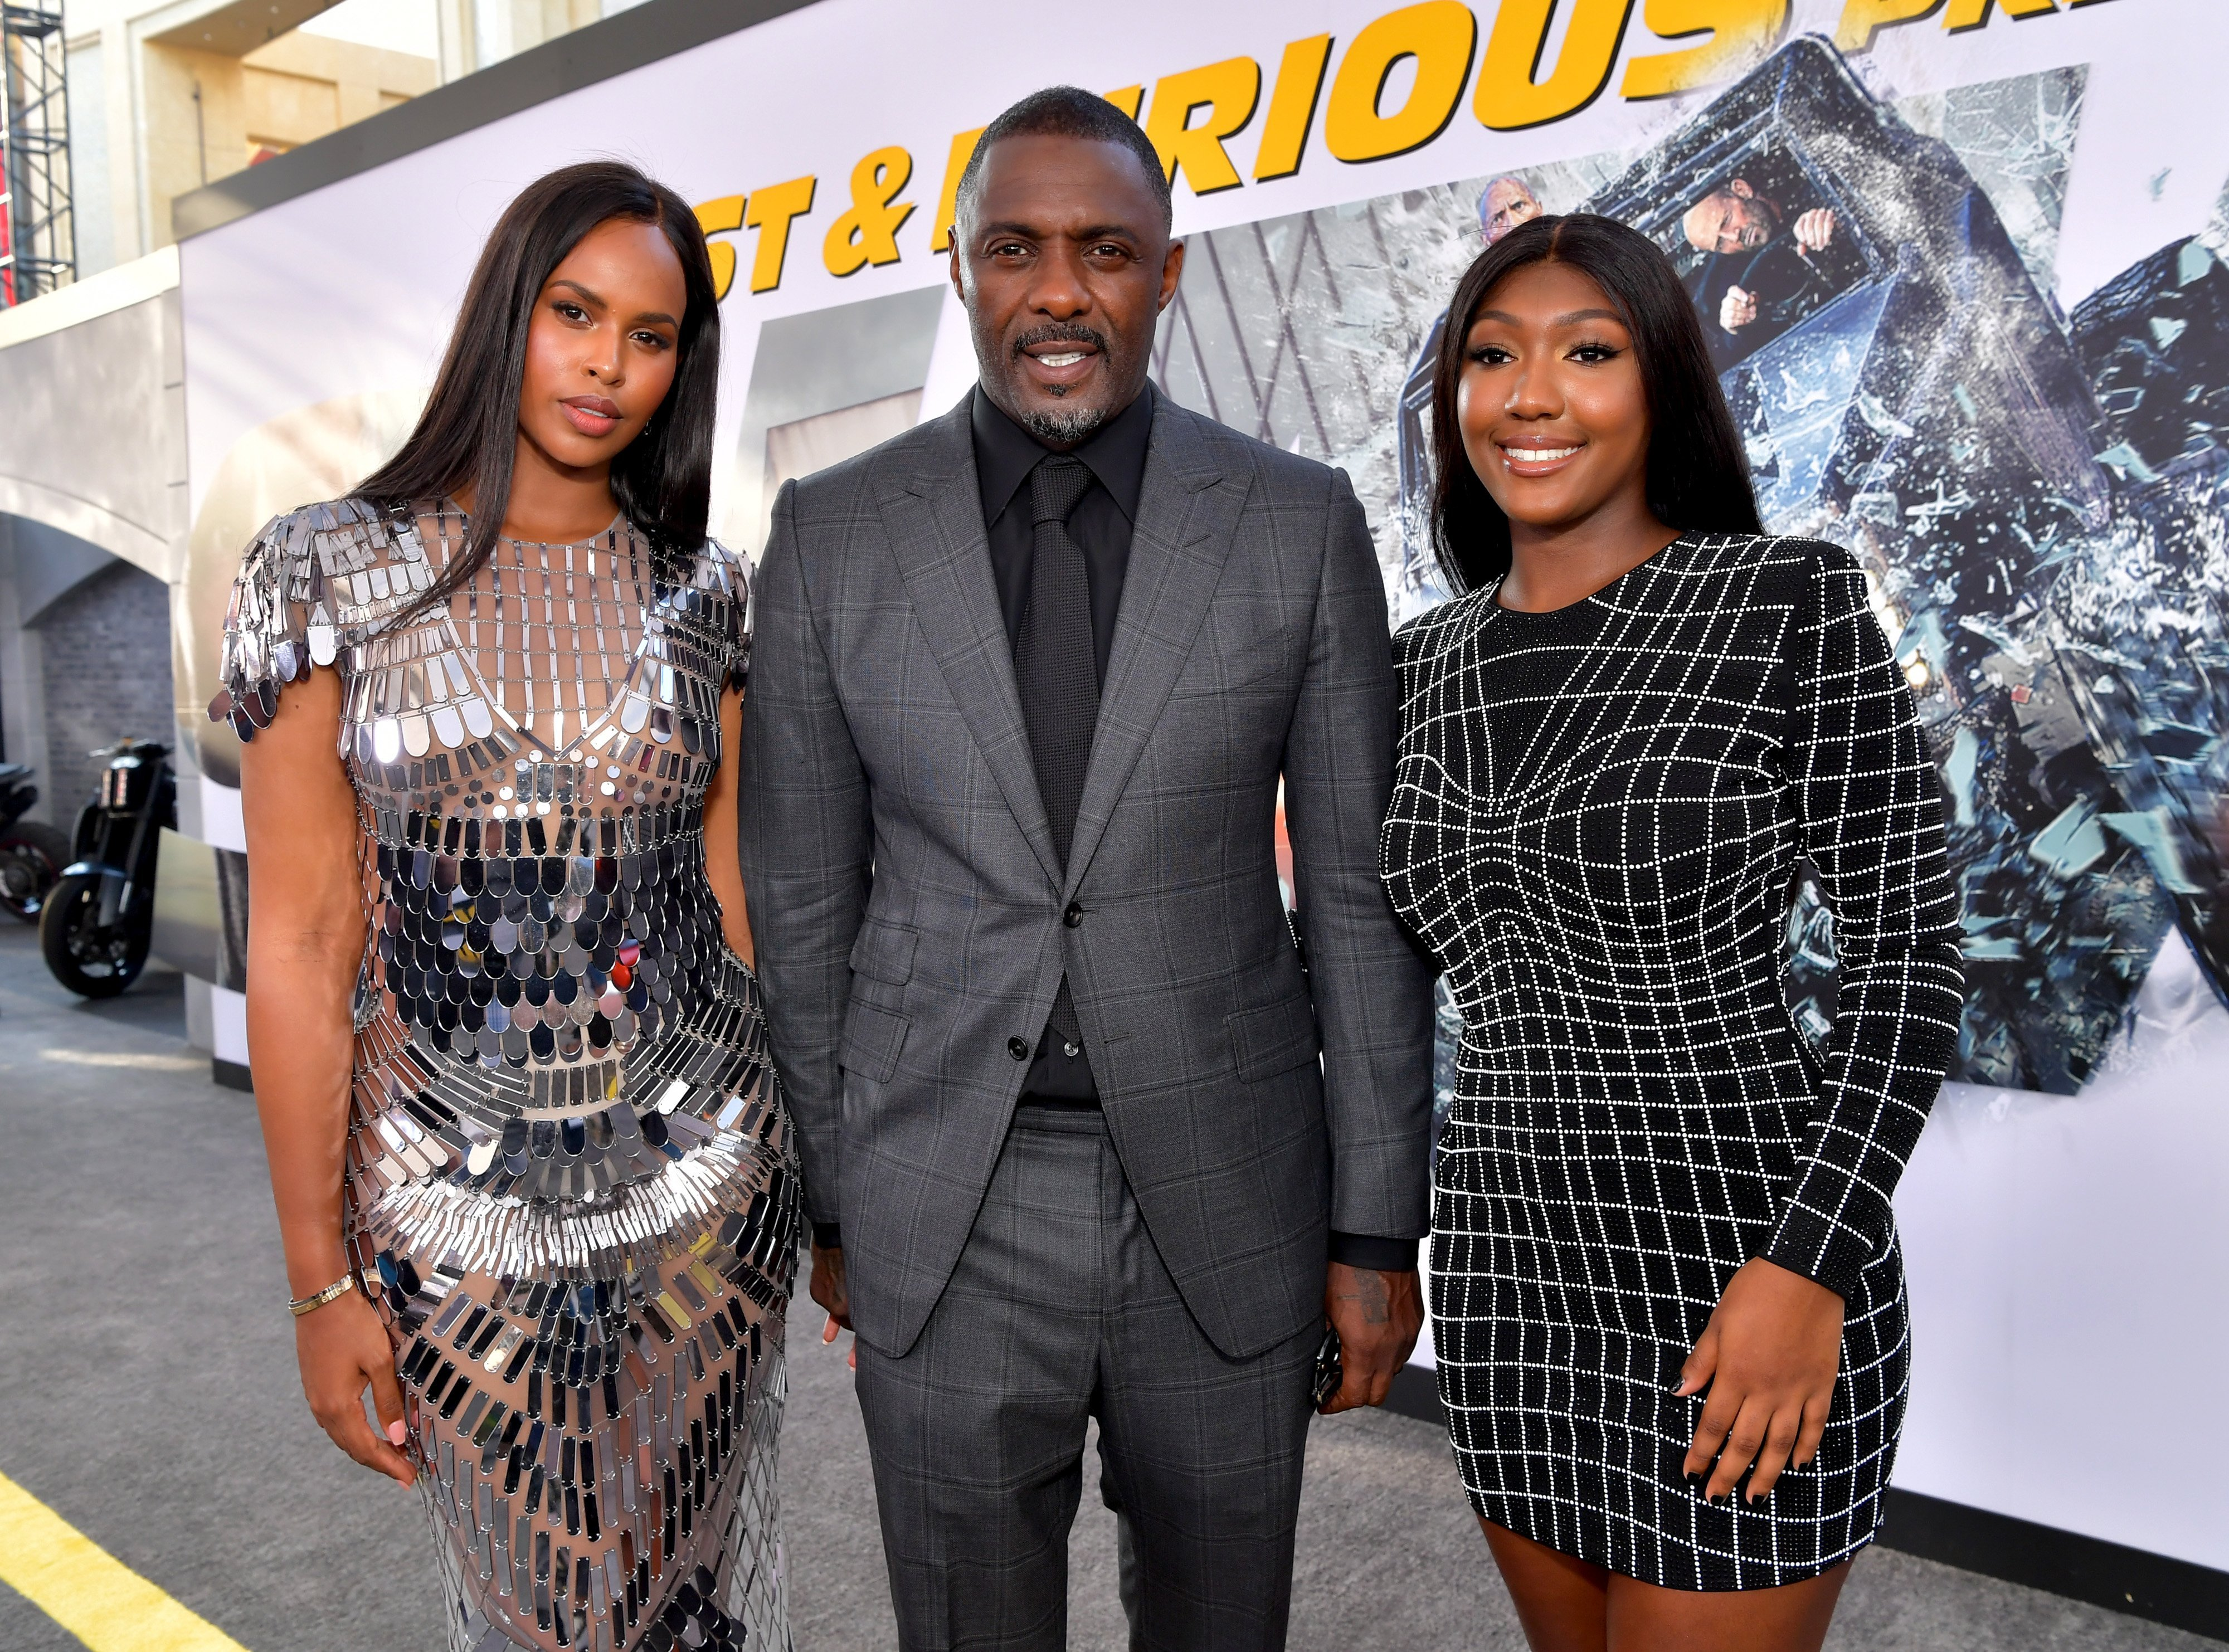 """(L-R) Sabrina Dhowre Elba, Idris Elba, & Isan Elba at the premiere of """"Fast & Furious Presents: Hobbs & Shaw"""" in Hollywood, California on July 13, 2019.  Photo: Getty Images"""